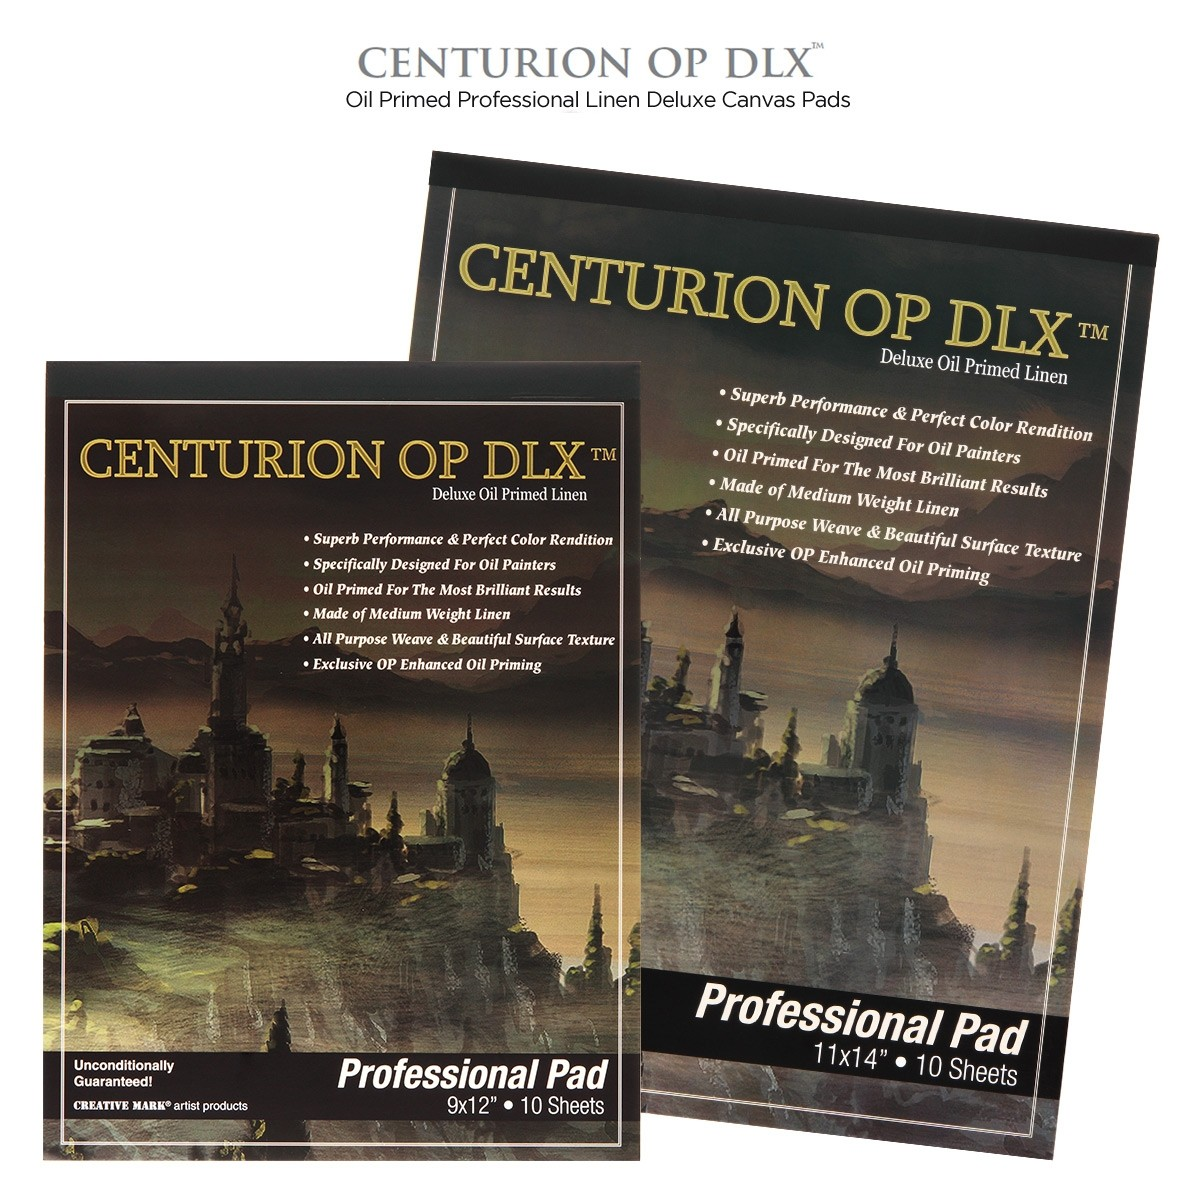 Centurion Deluxe Professional Oil Primed Linen Pads 10 Sheets